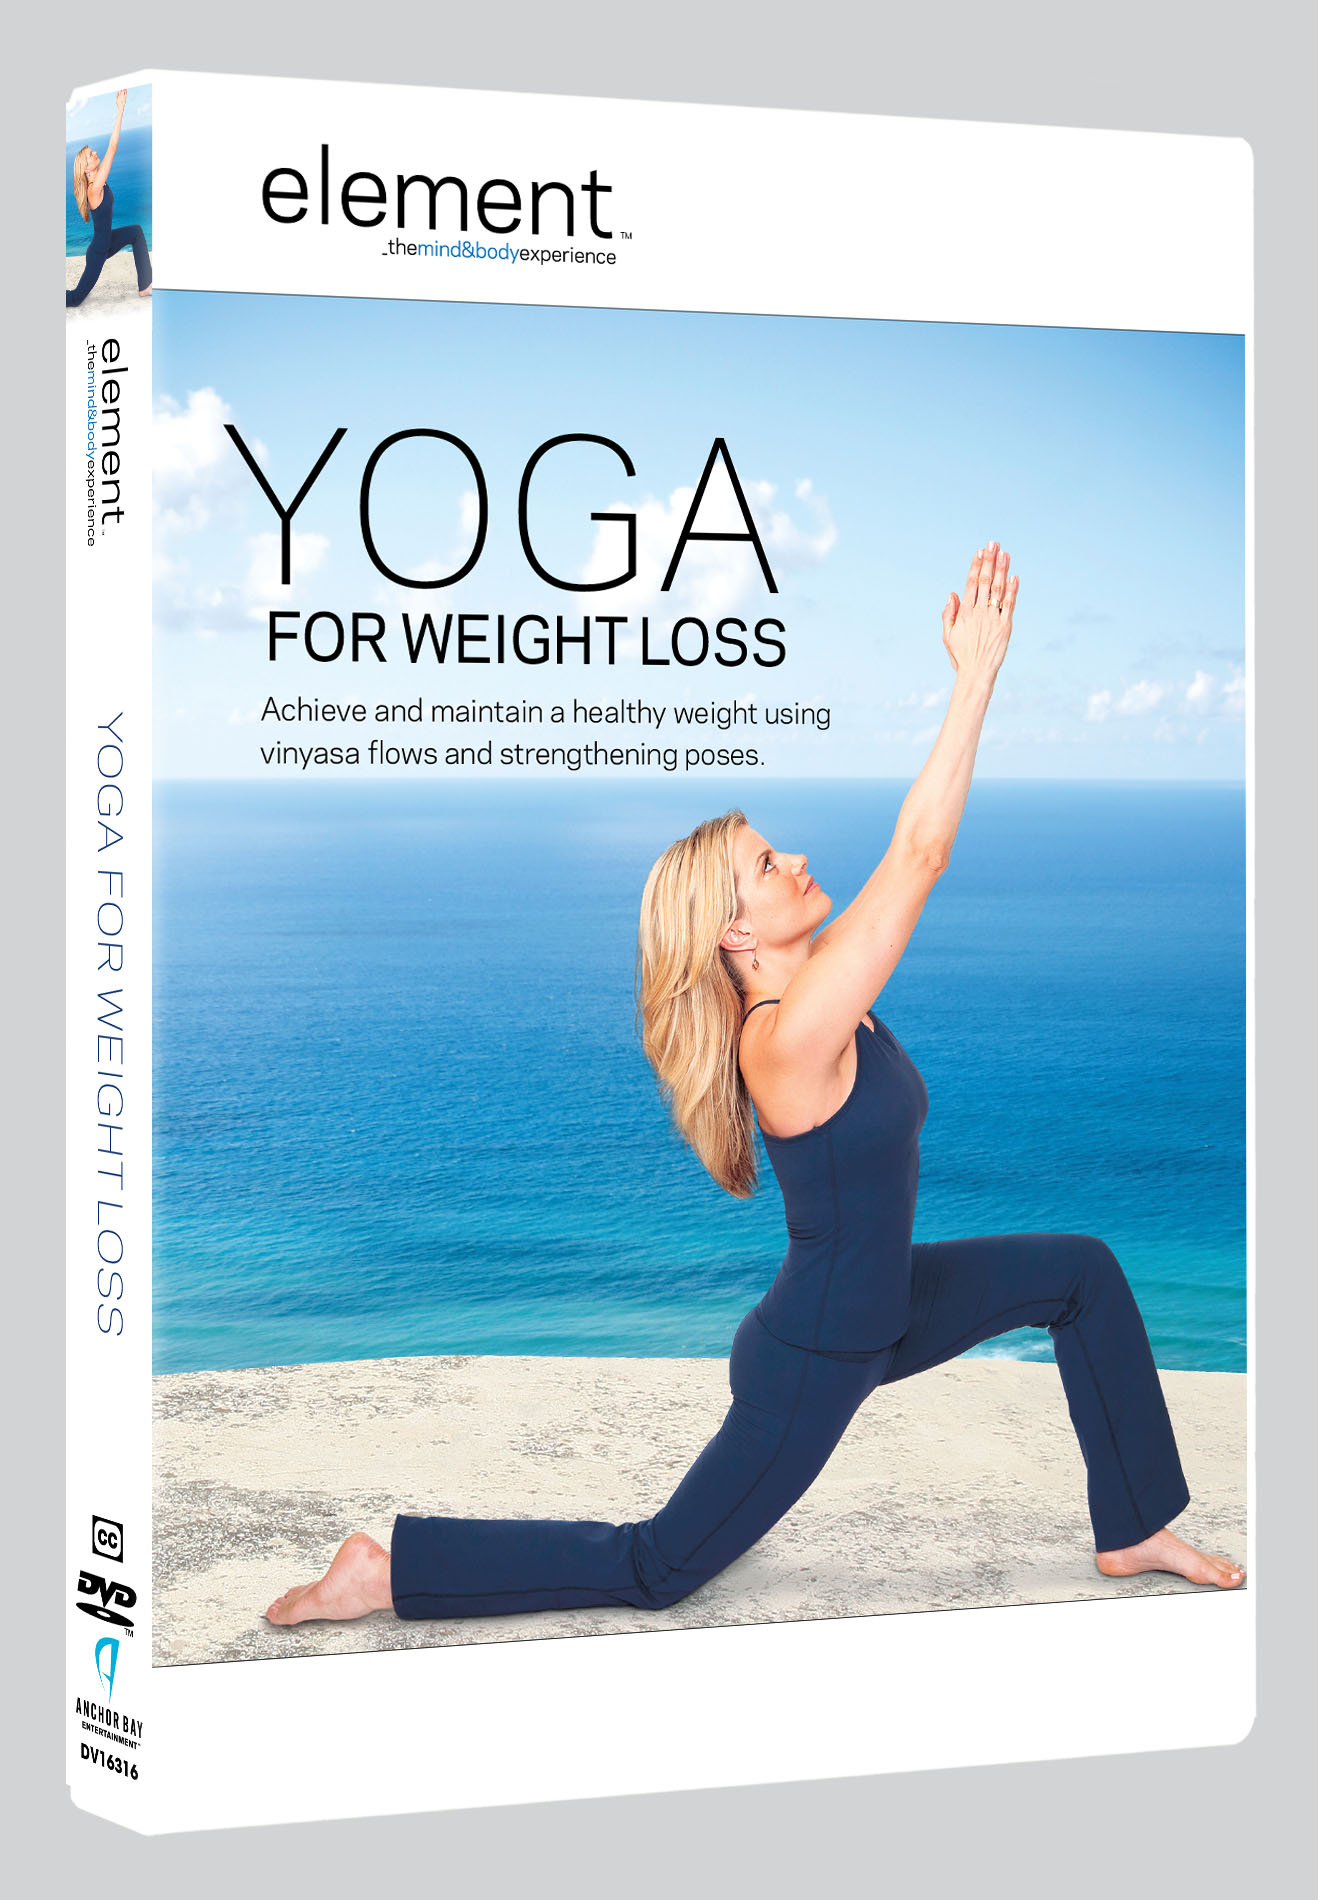 yoga 120 150 words Here is your ultimate yoga gift guide from wearables to mats to retreats and  teacher trainings  with every topic you could ever hope for being covered in an  easy 5-120 minute class  quarry arts building, 715 hill street, suite 150,  madison, wisconsin  if any of these words above have resonated with you  read more.